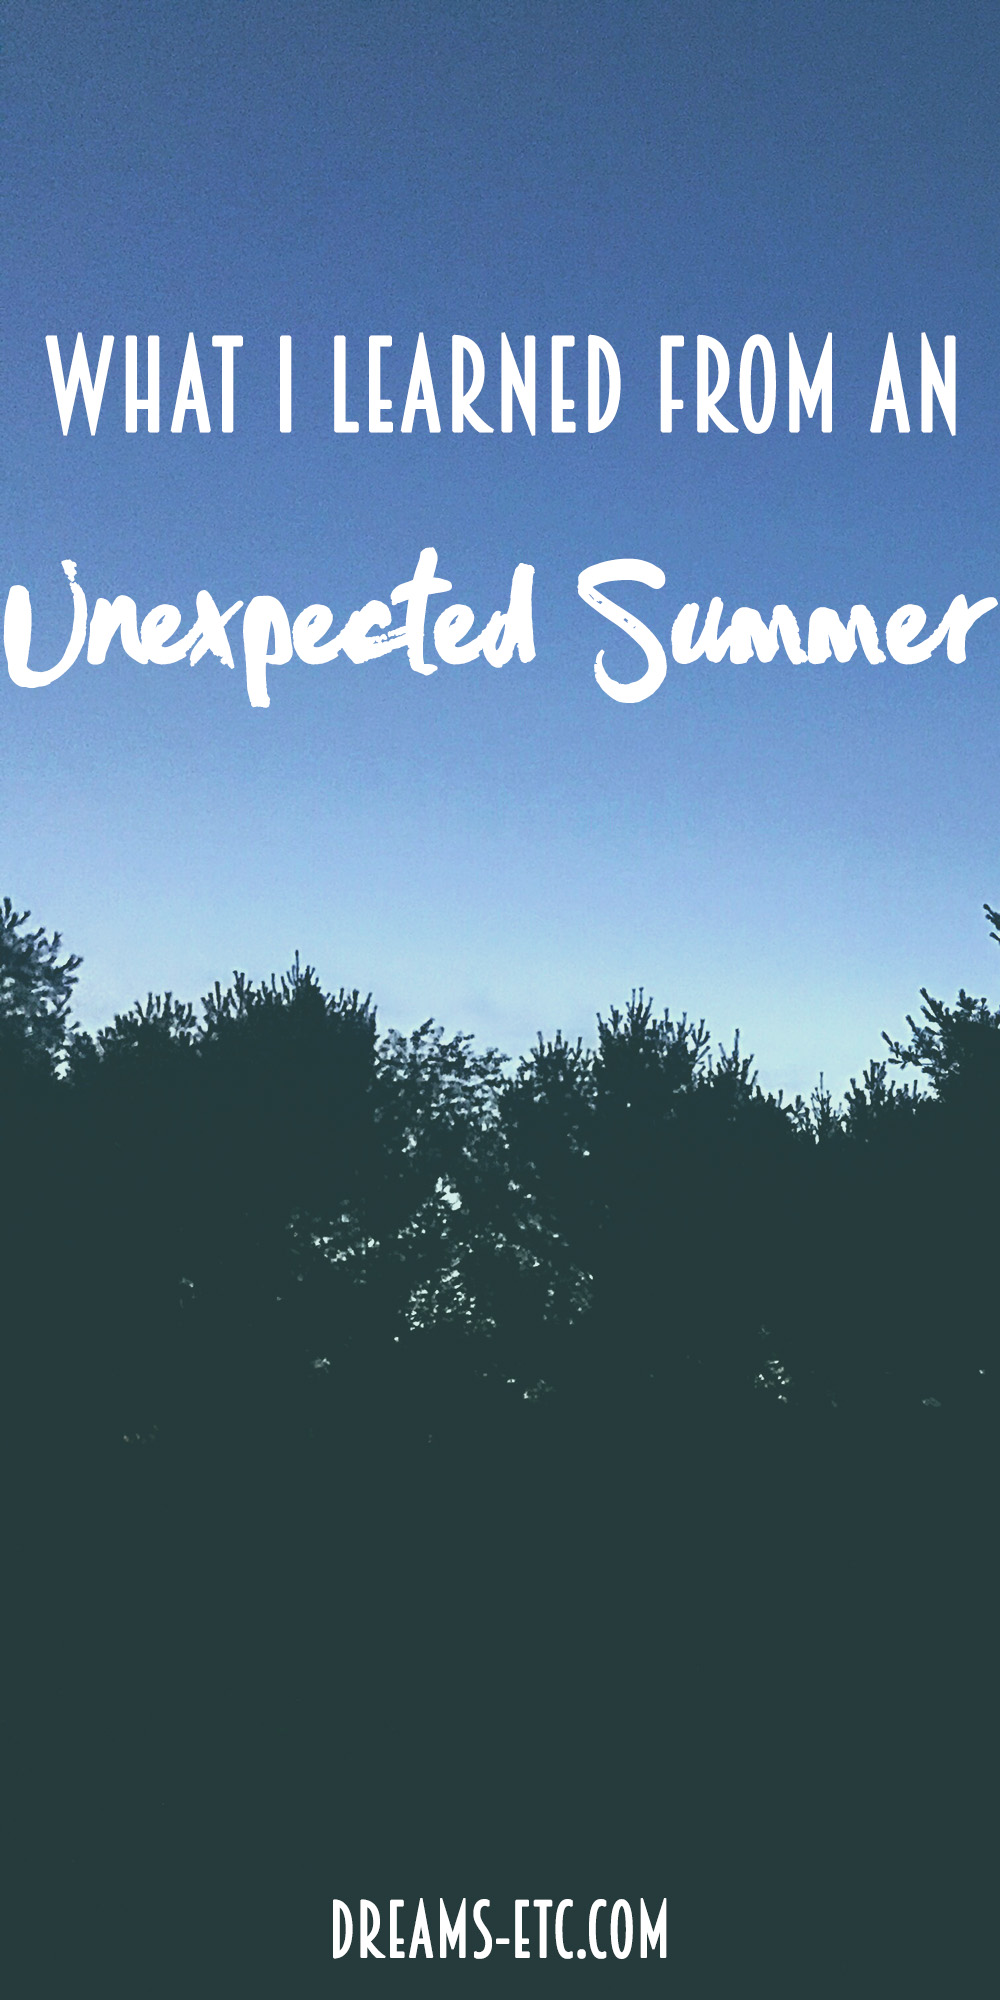 This summer I had to deal with some unanticipated things that came up. Here are the life lessons that I learned during this unexpected summer.